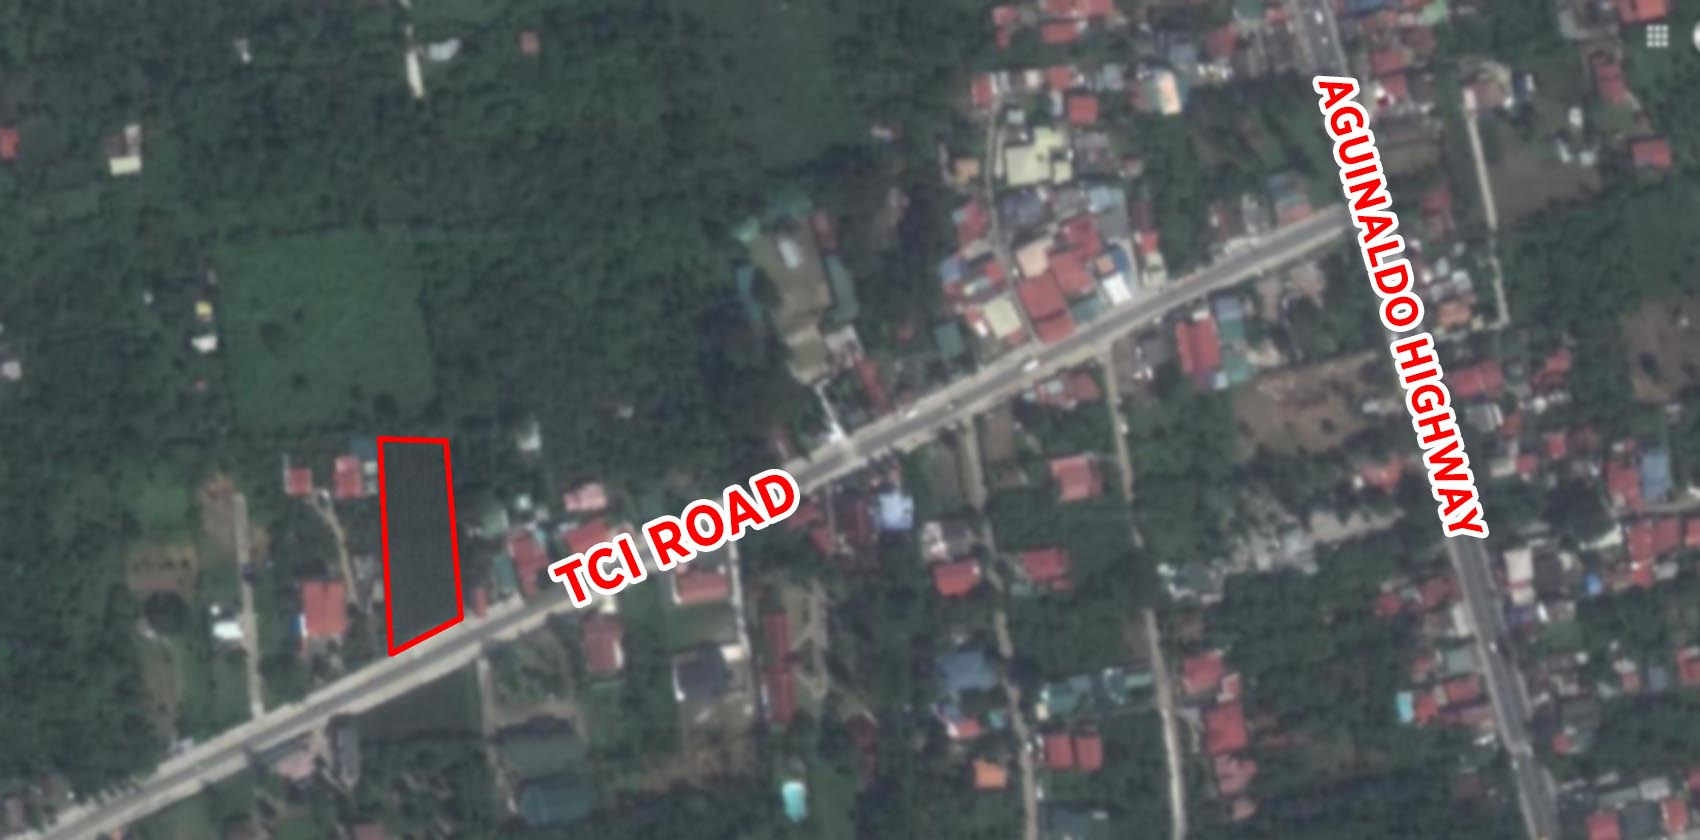 Tagaytay TCI Road Vacant Lot Raw Land For Sale3